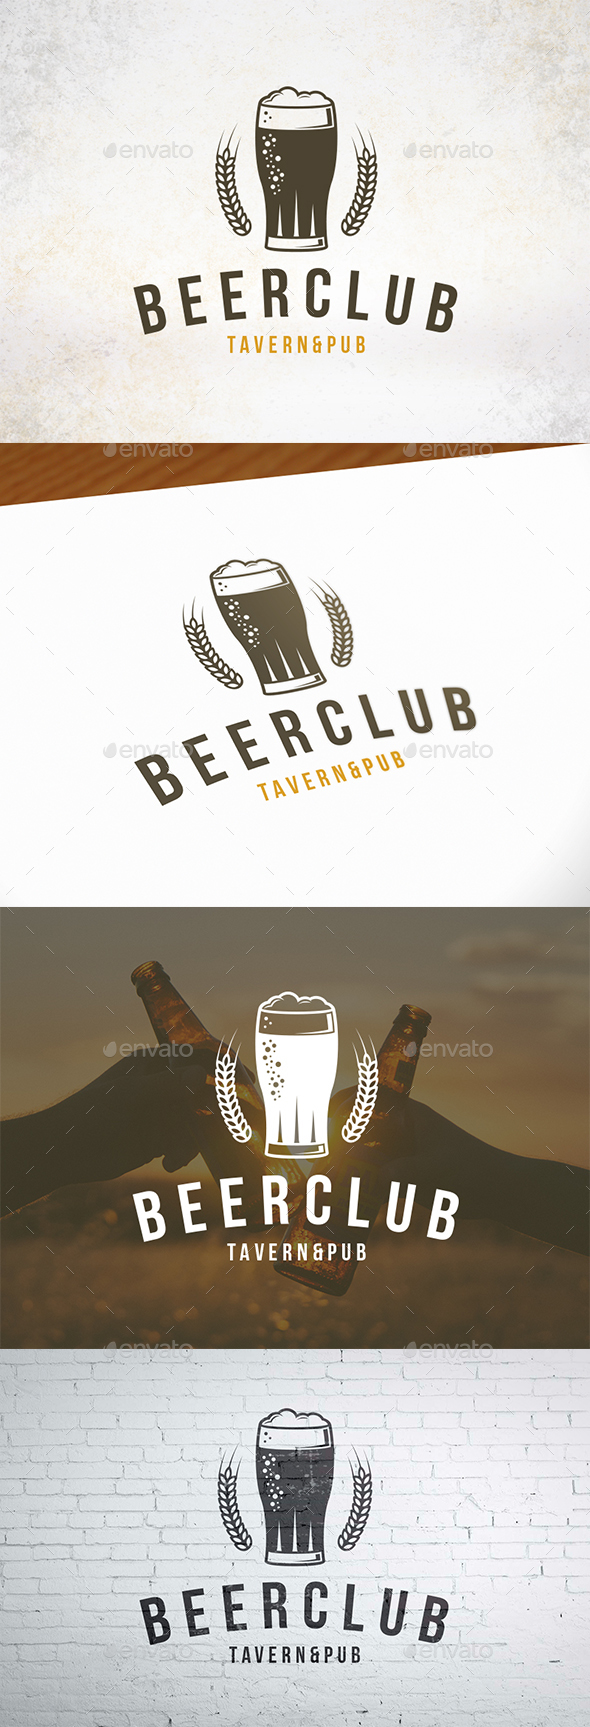 Beer Club Crest Logo - Crests Logo Templates